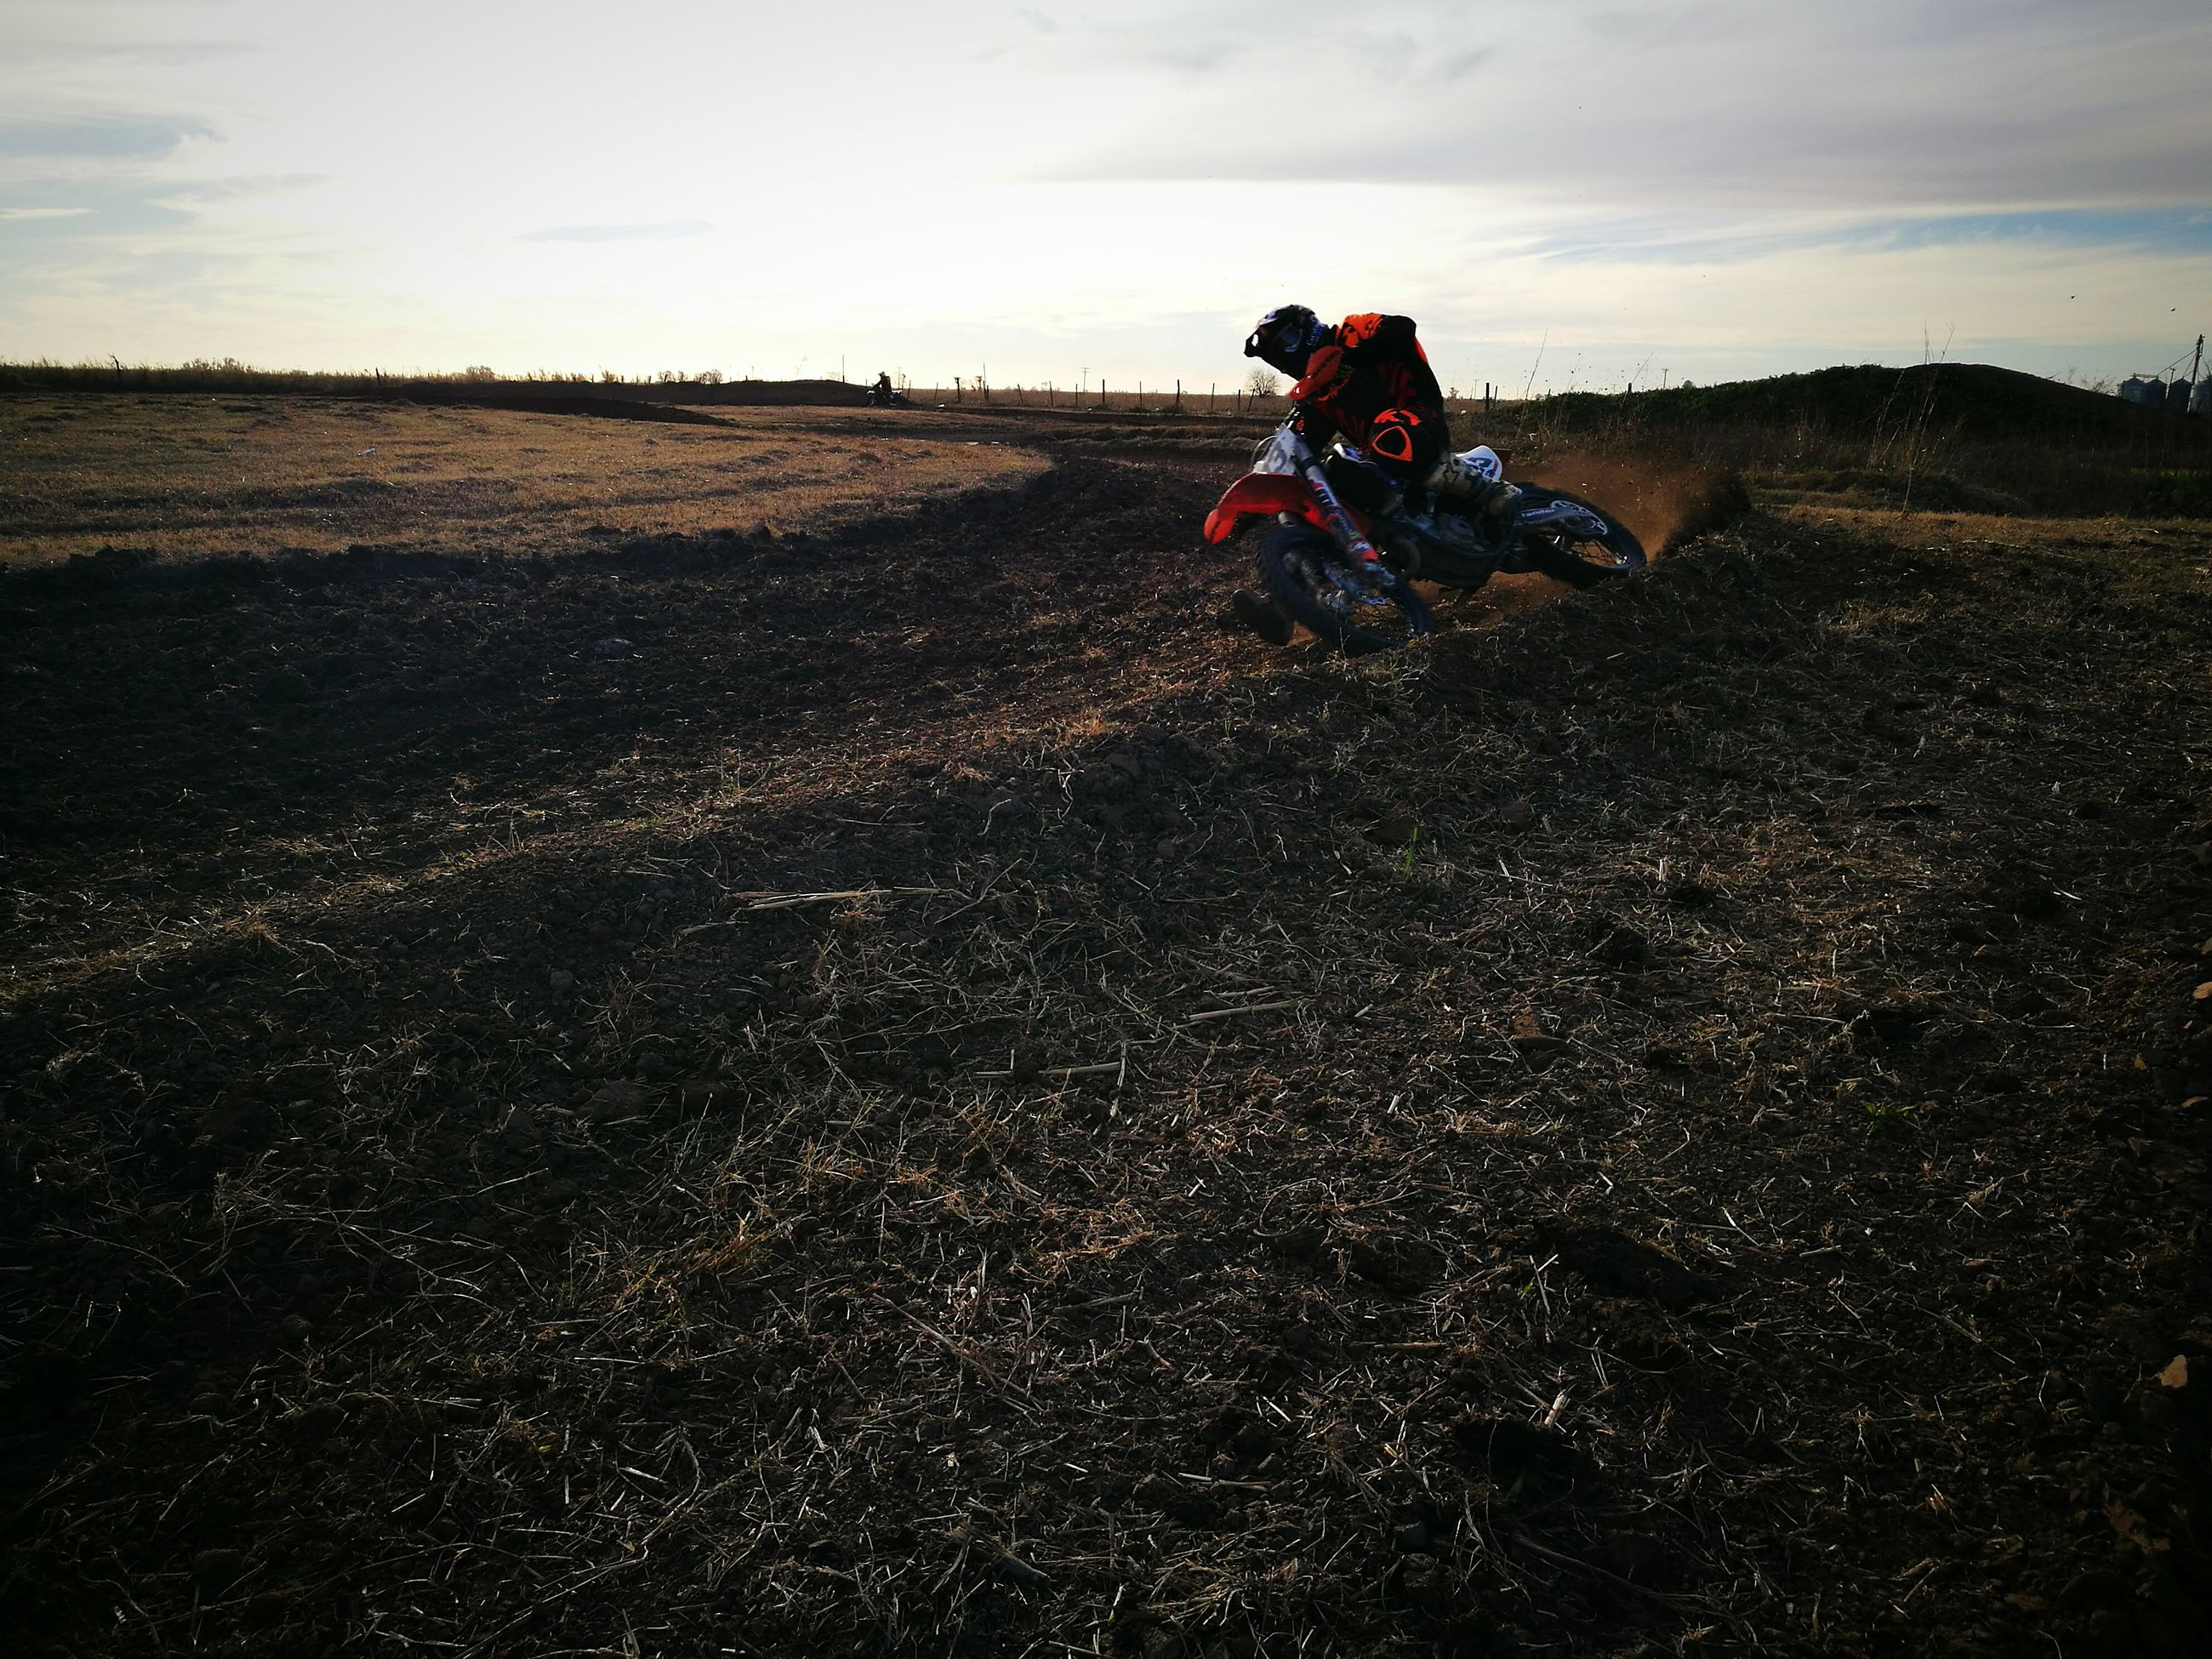 field, riding, landscape, real people, transportation, sky, motocross, one person, motorcycle, domestic animals, men, helmet, land vehicle, nature, outdoors, adventure, rural scene, lifestyles, day, mammal, sports race, people